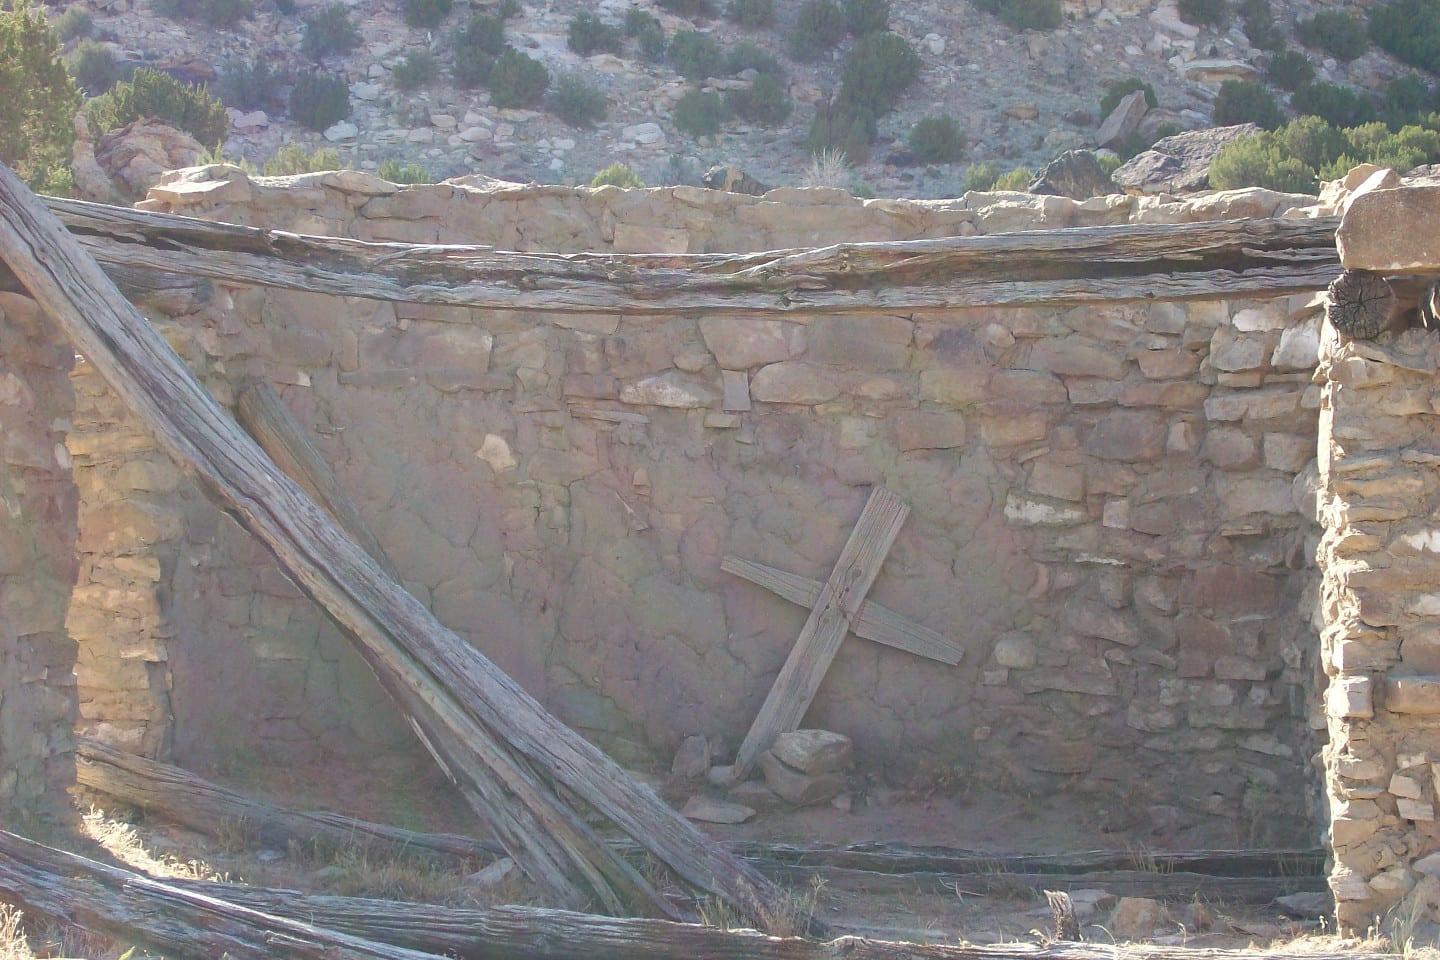 Picketwire Canyonlands Spanish Catholic Church Ruins